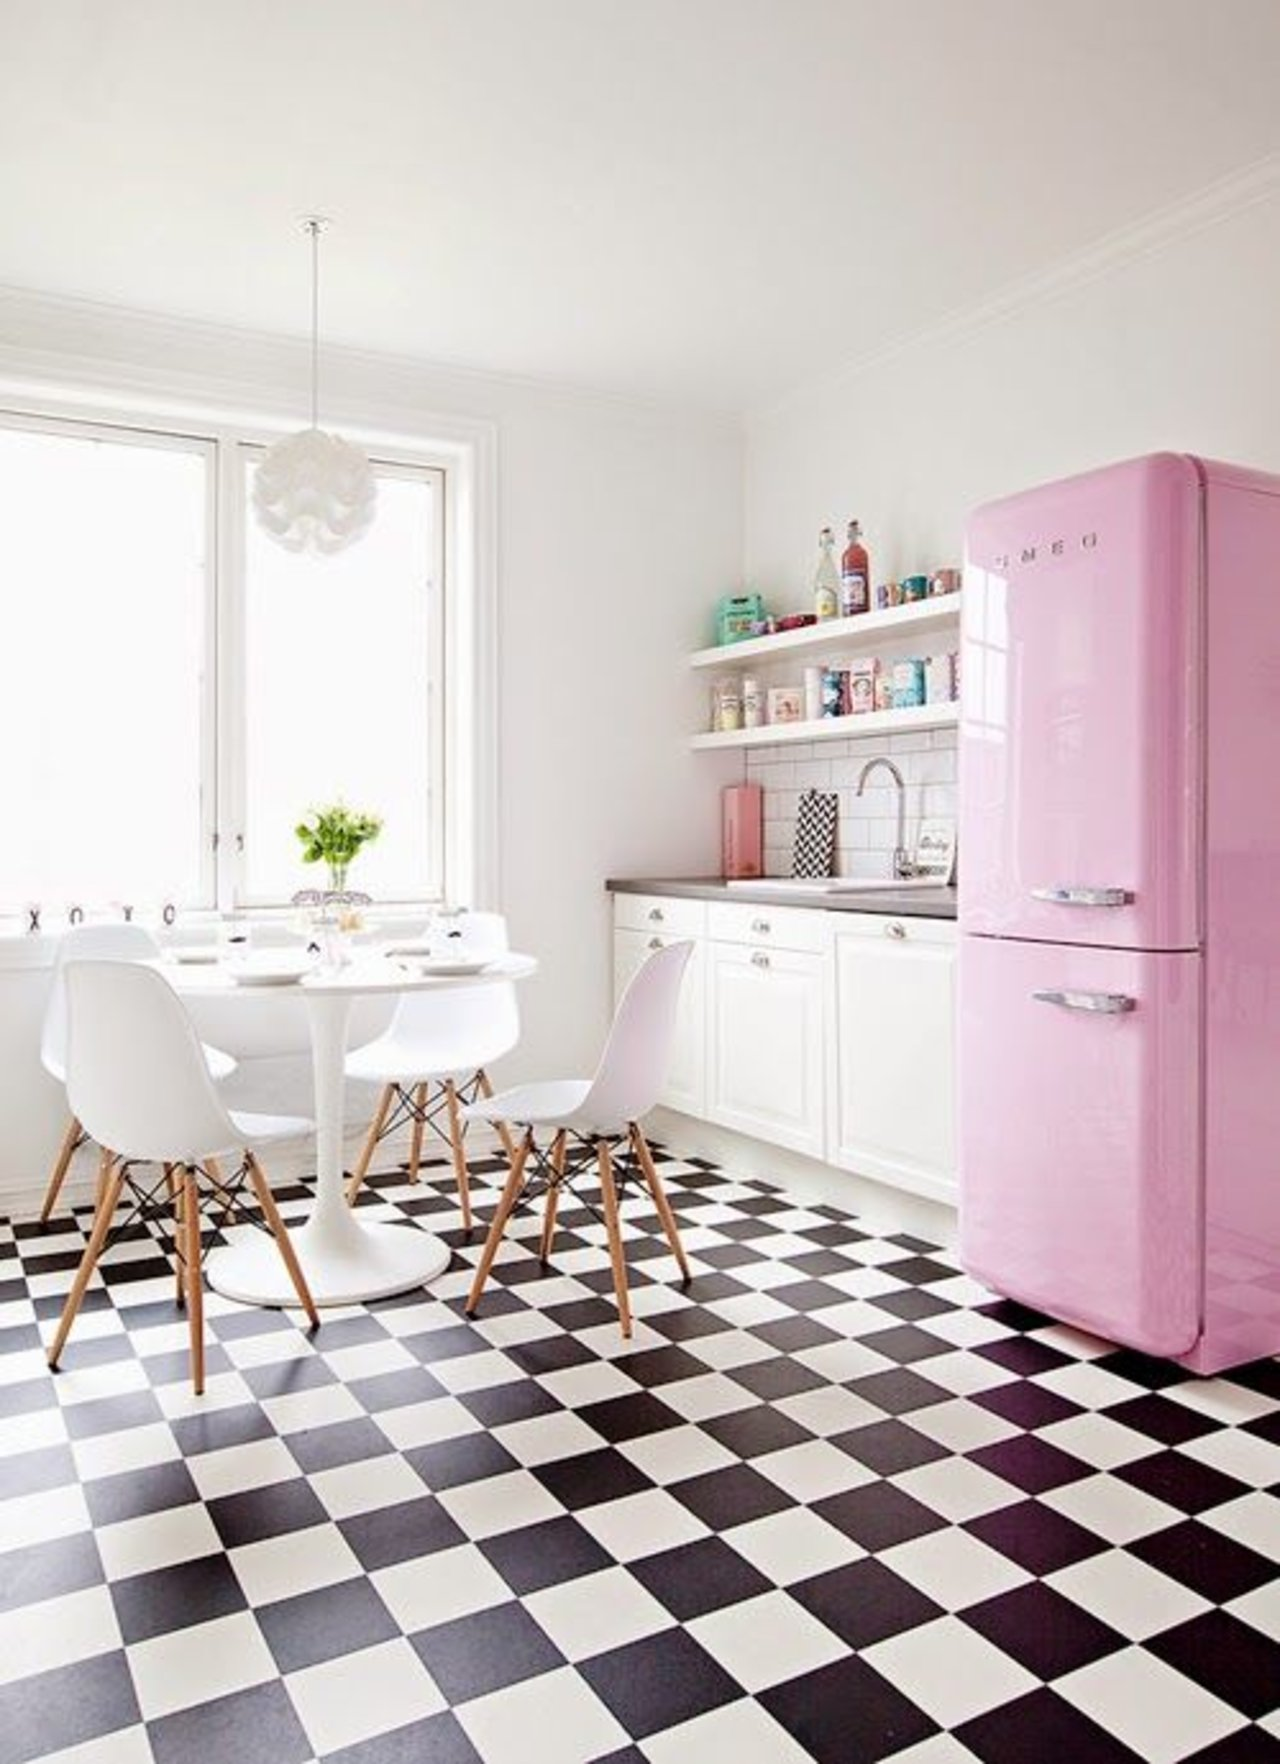 8 rooms that prove smeg fridges are the key to a fabulously retro 8 rooms that prove smeg fridges are the key to a fabulously retro kitchen